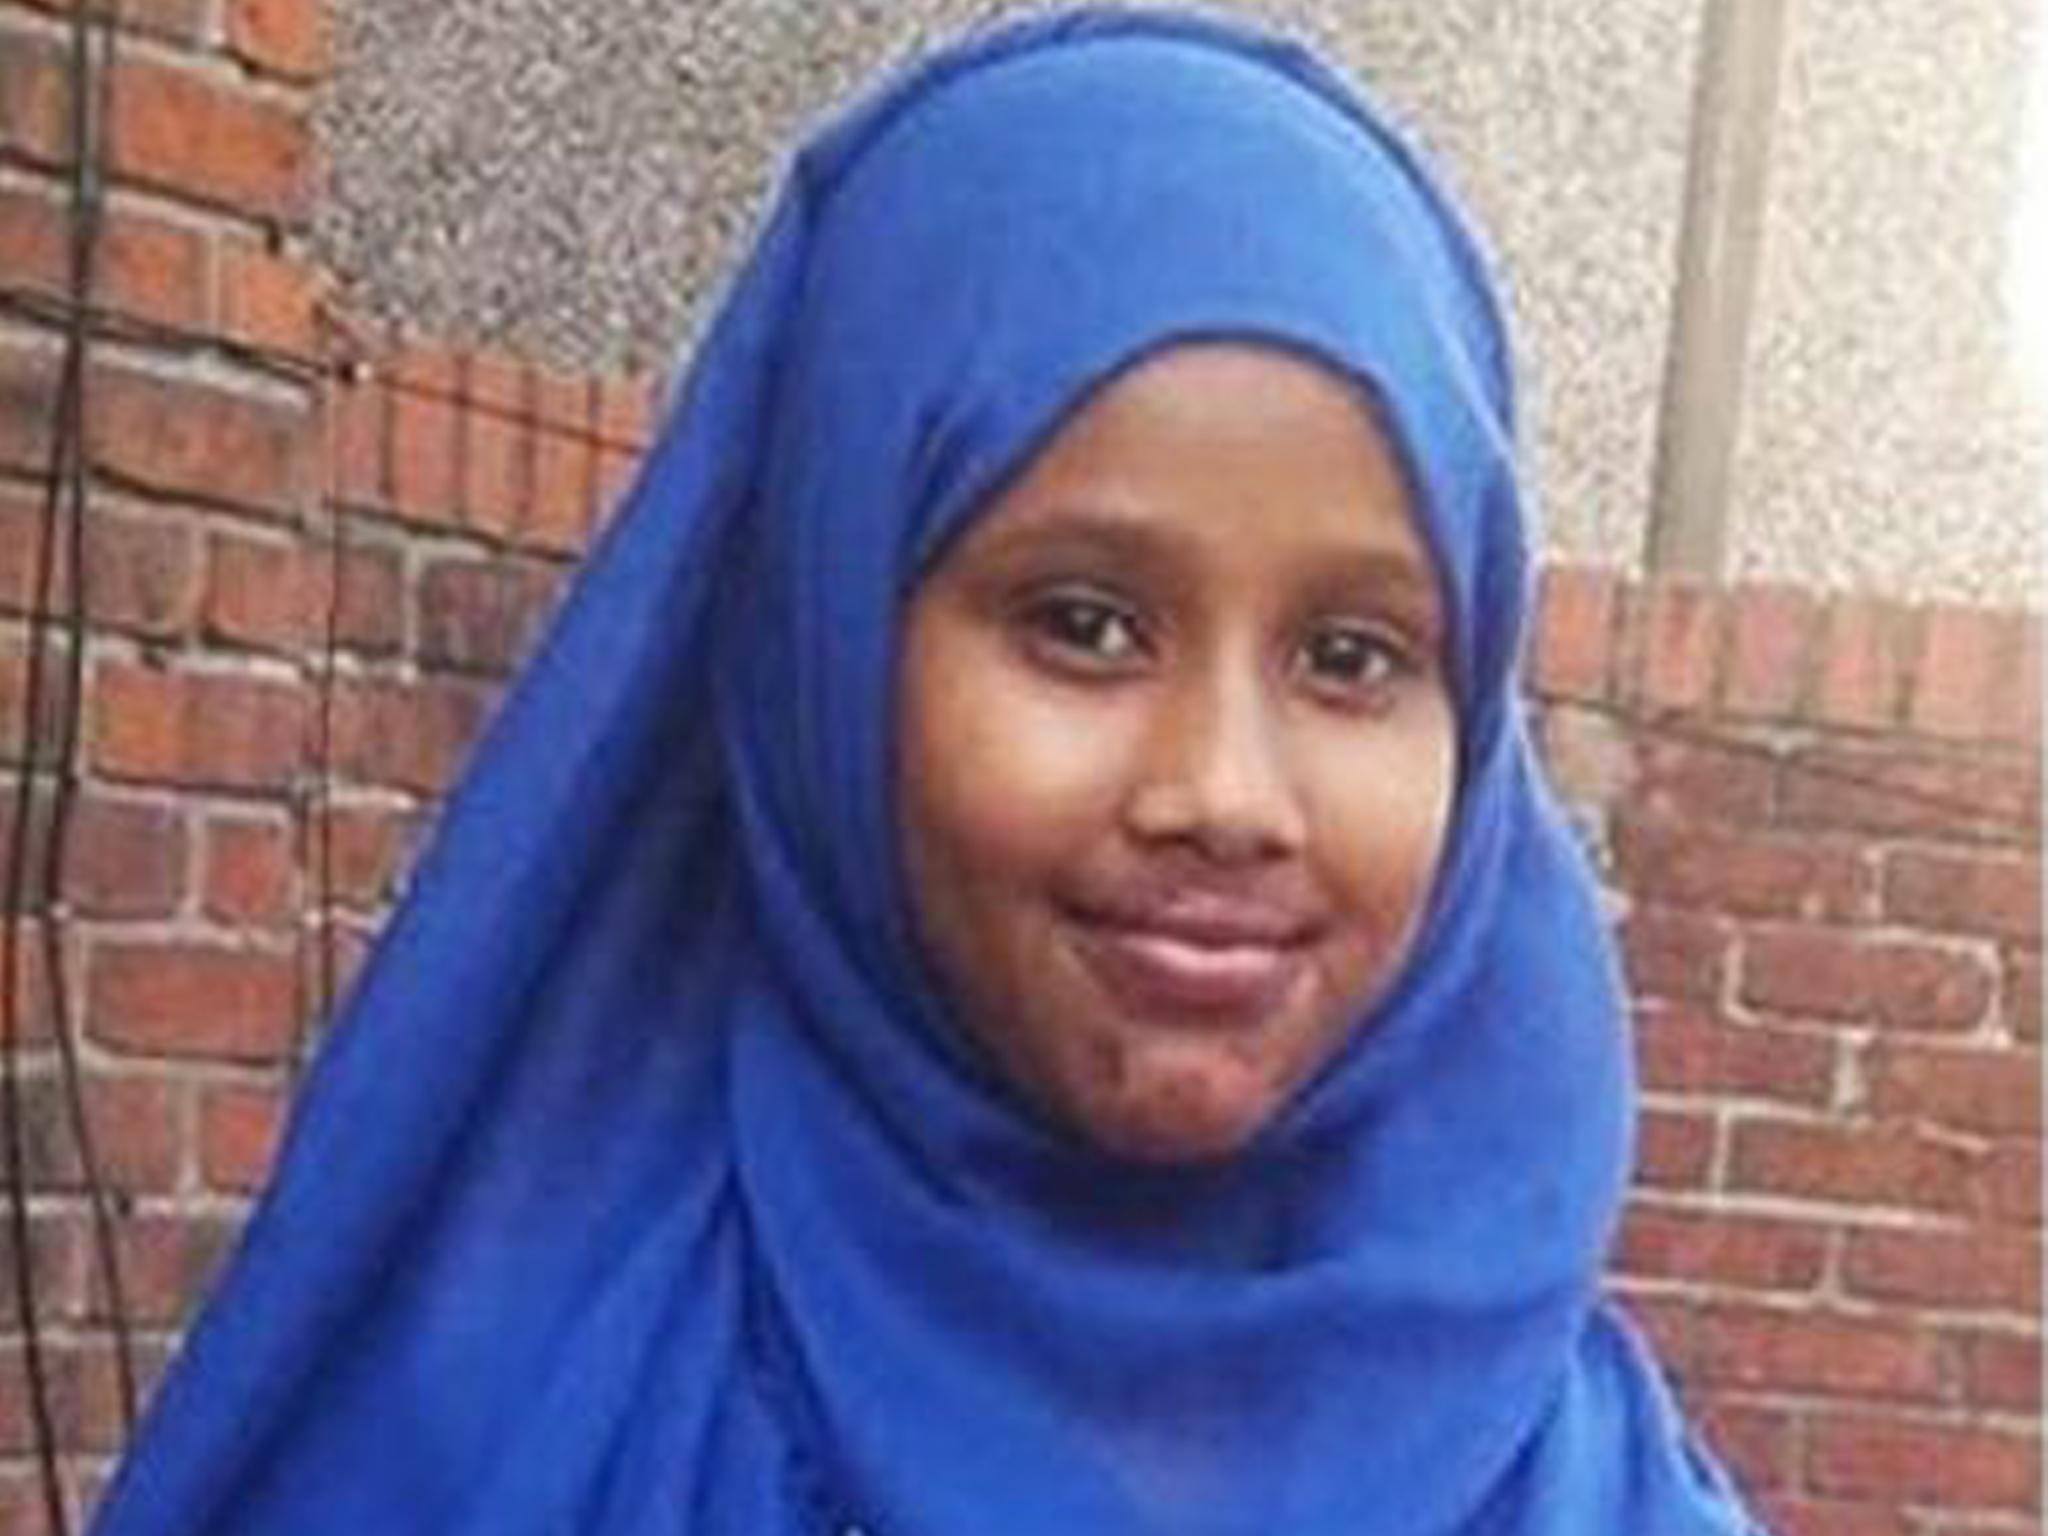 School friend told 12-year-old refugee who drowned in river to 'get in the water or I'll kill you', inquest hears